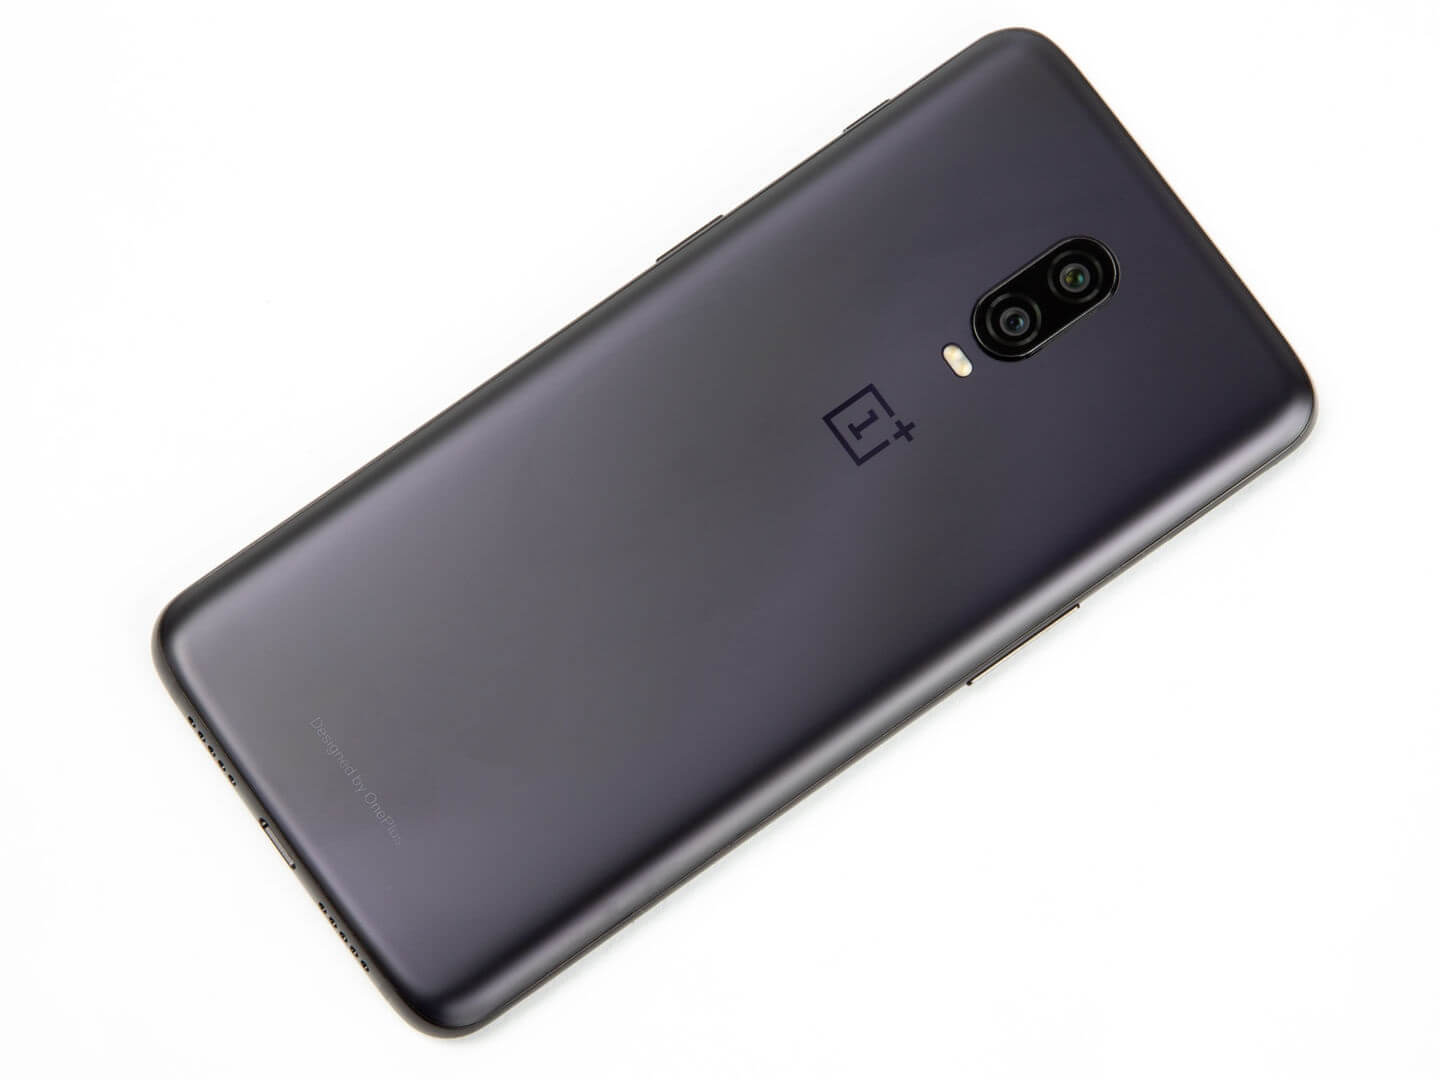 oneplus 6t review roundup camera